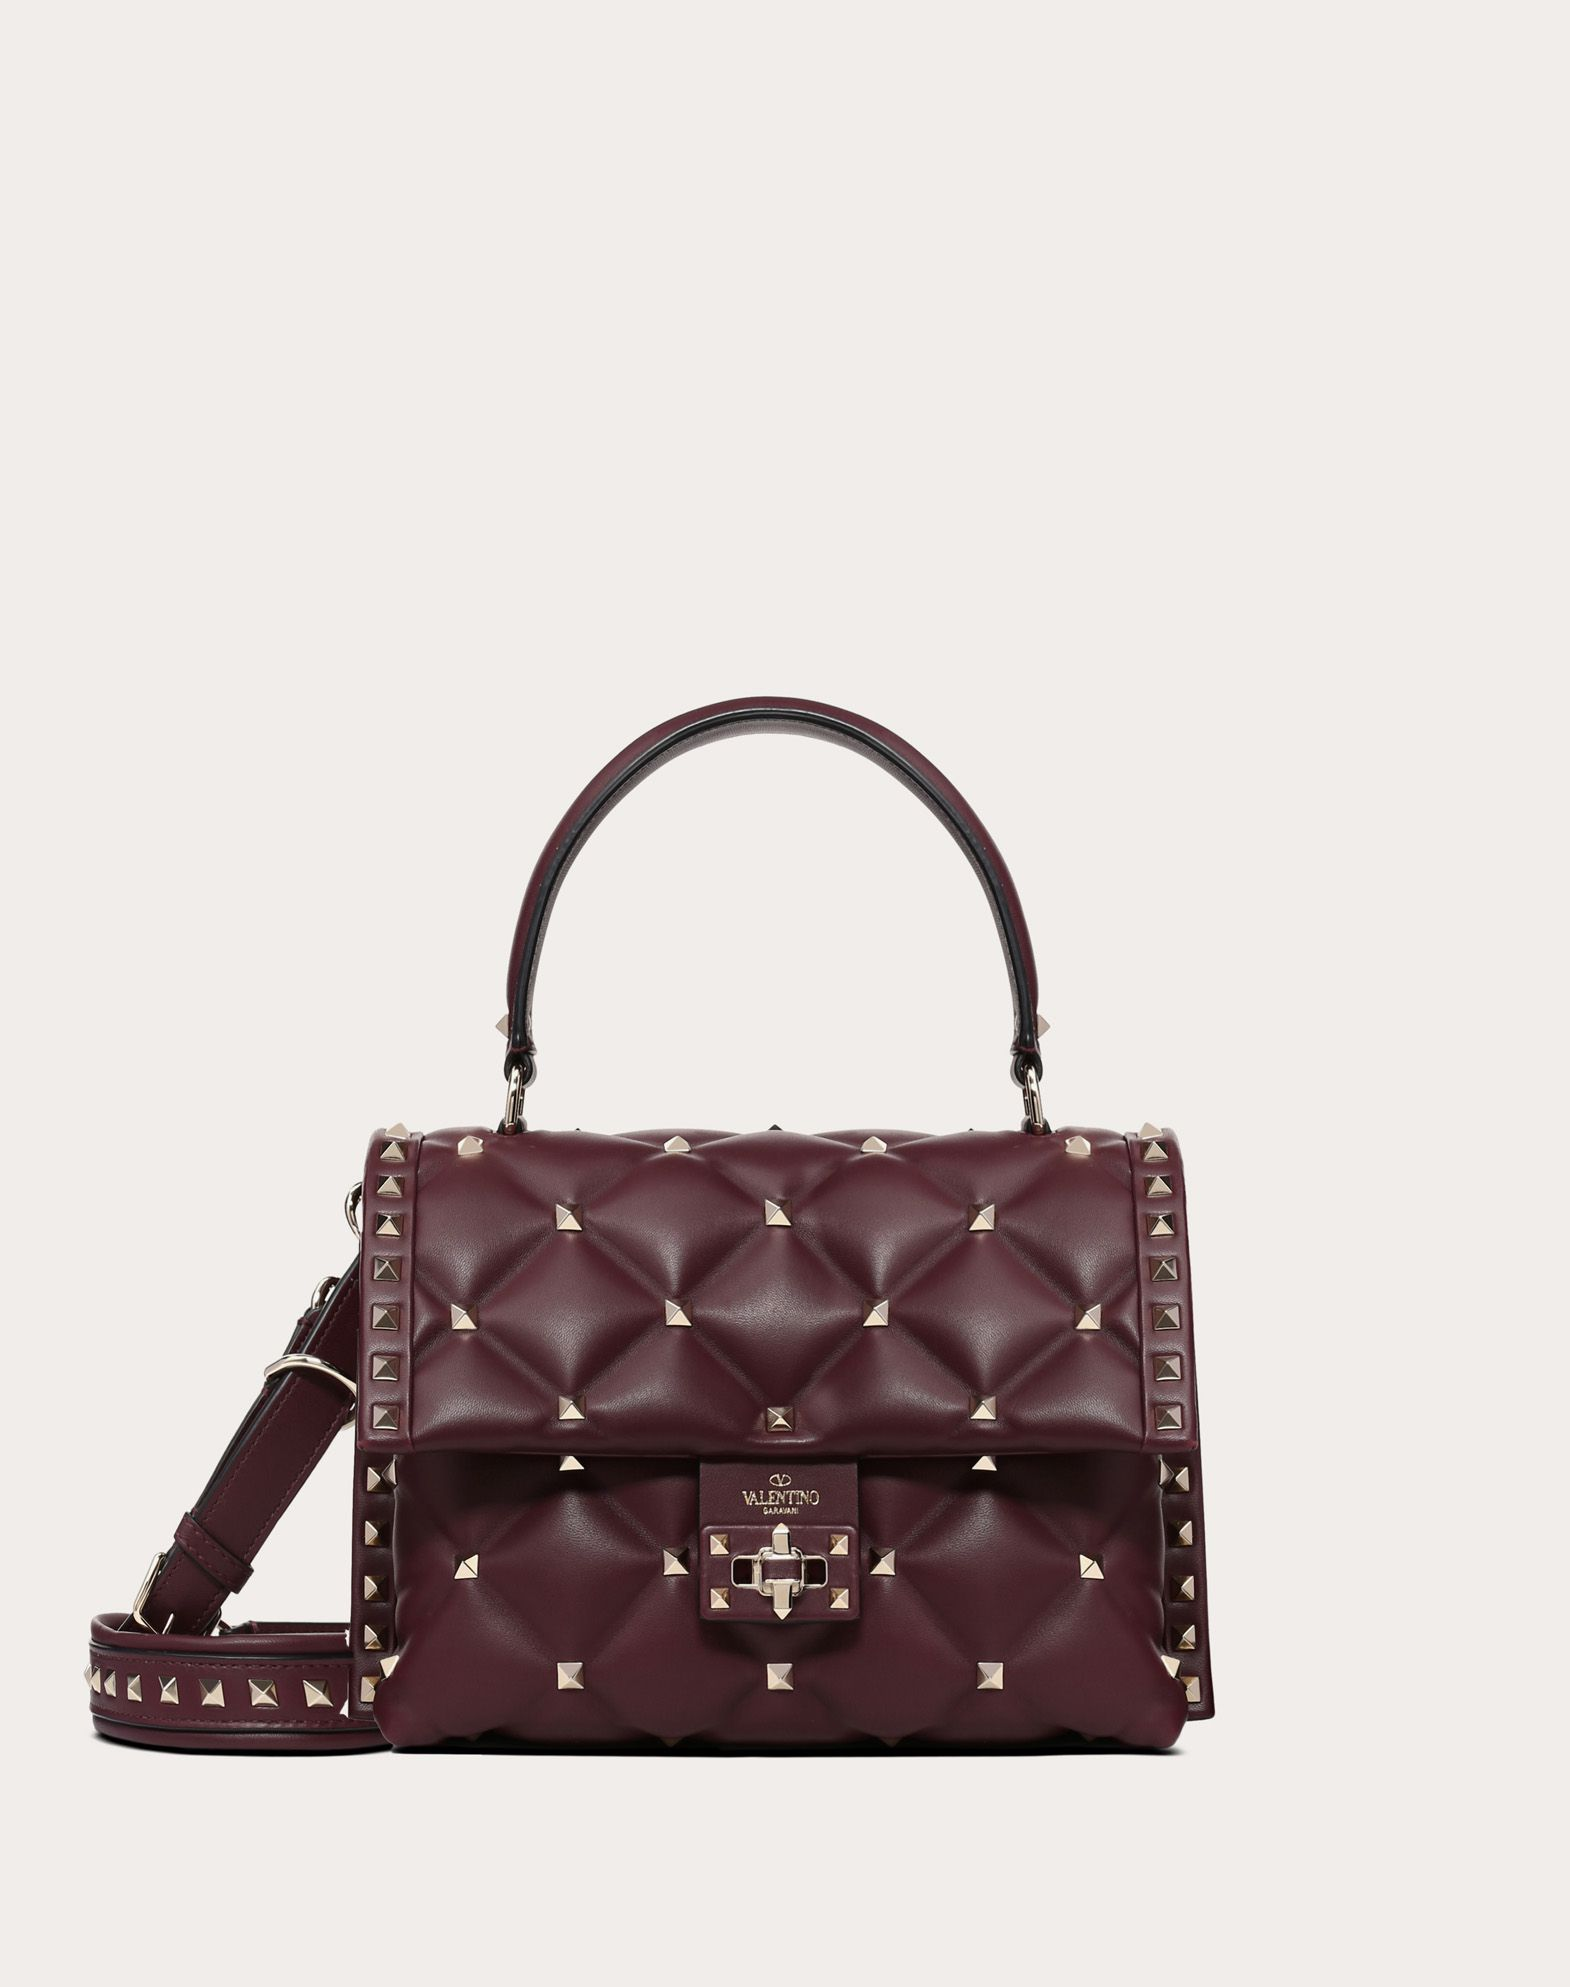 Medium Candystud top-handle bag